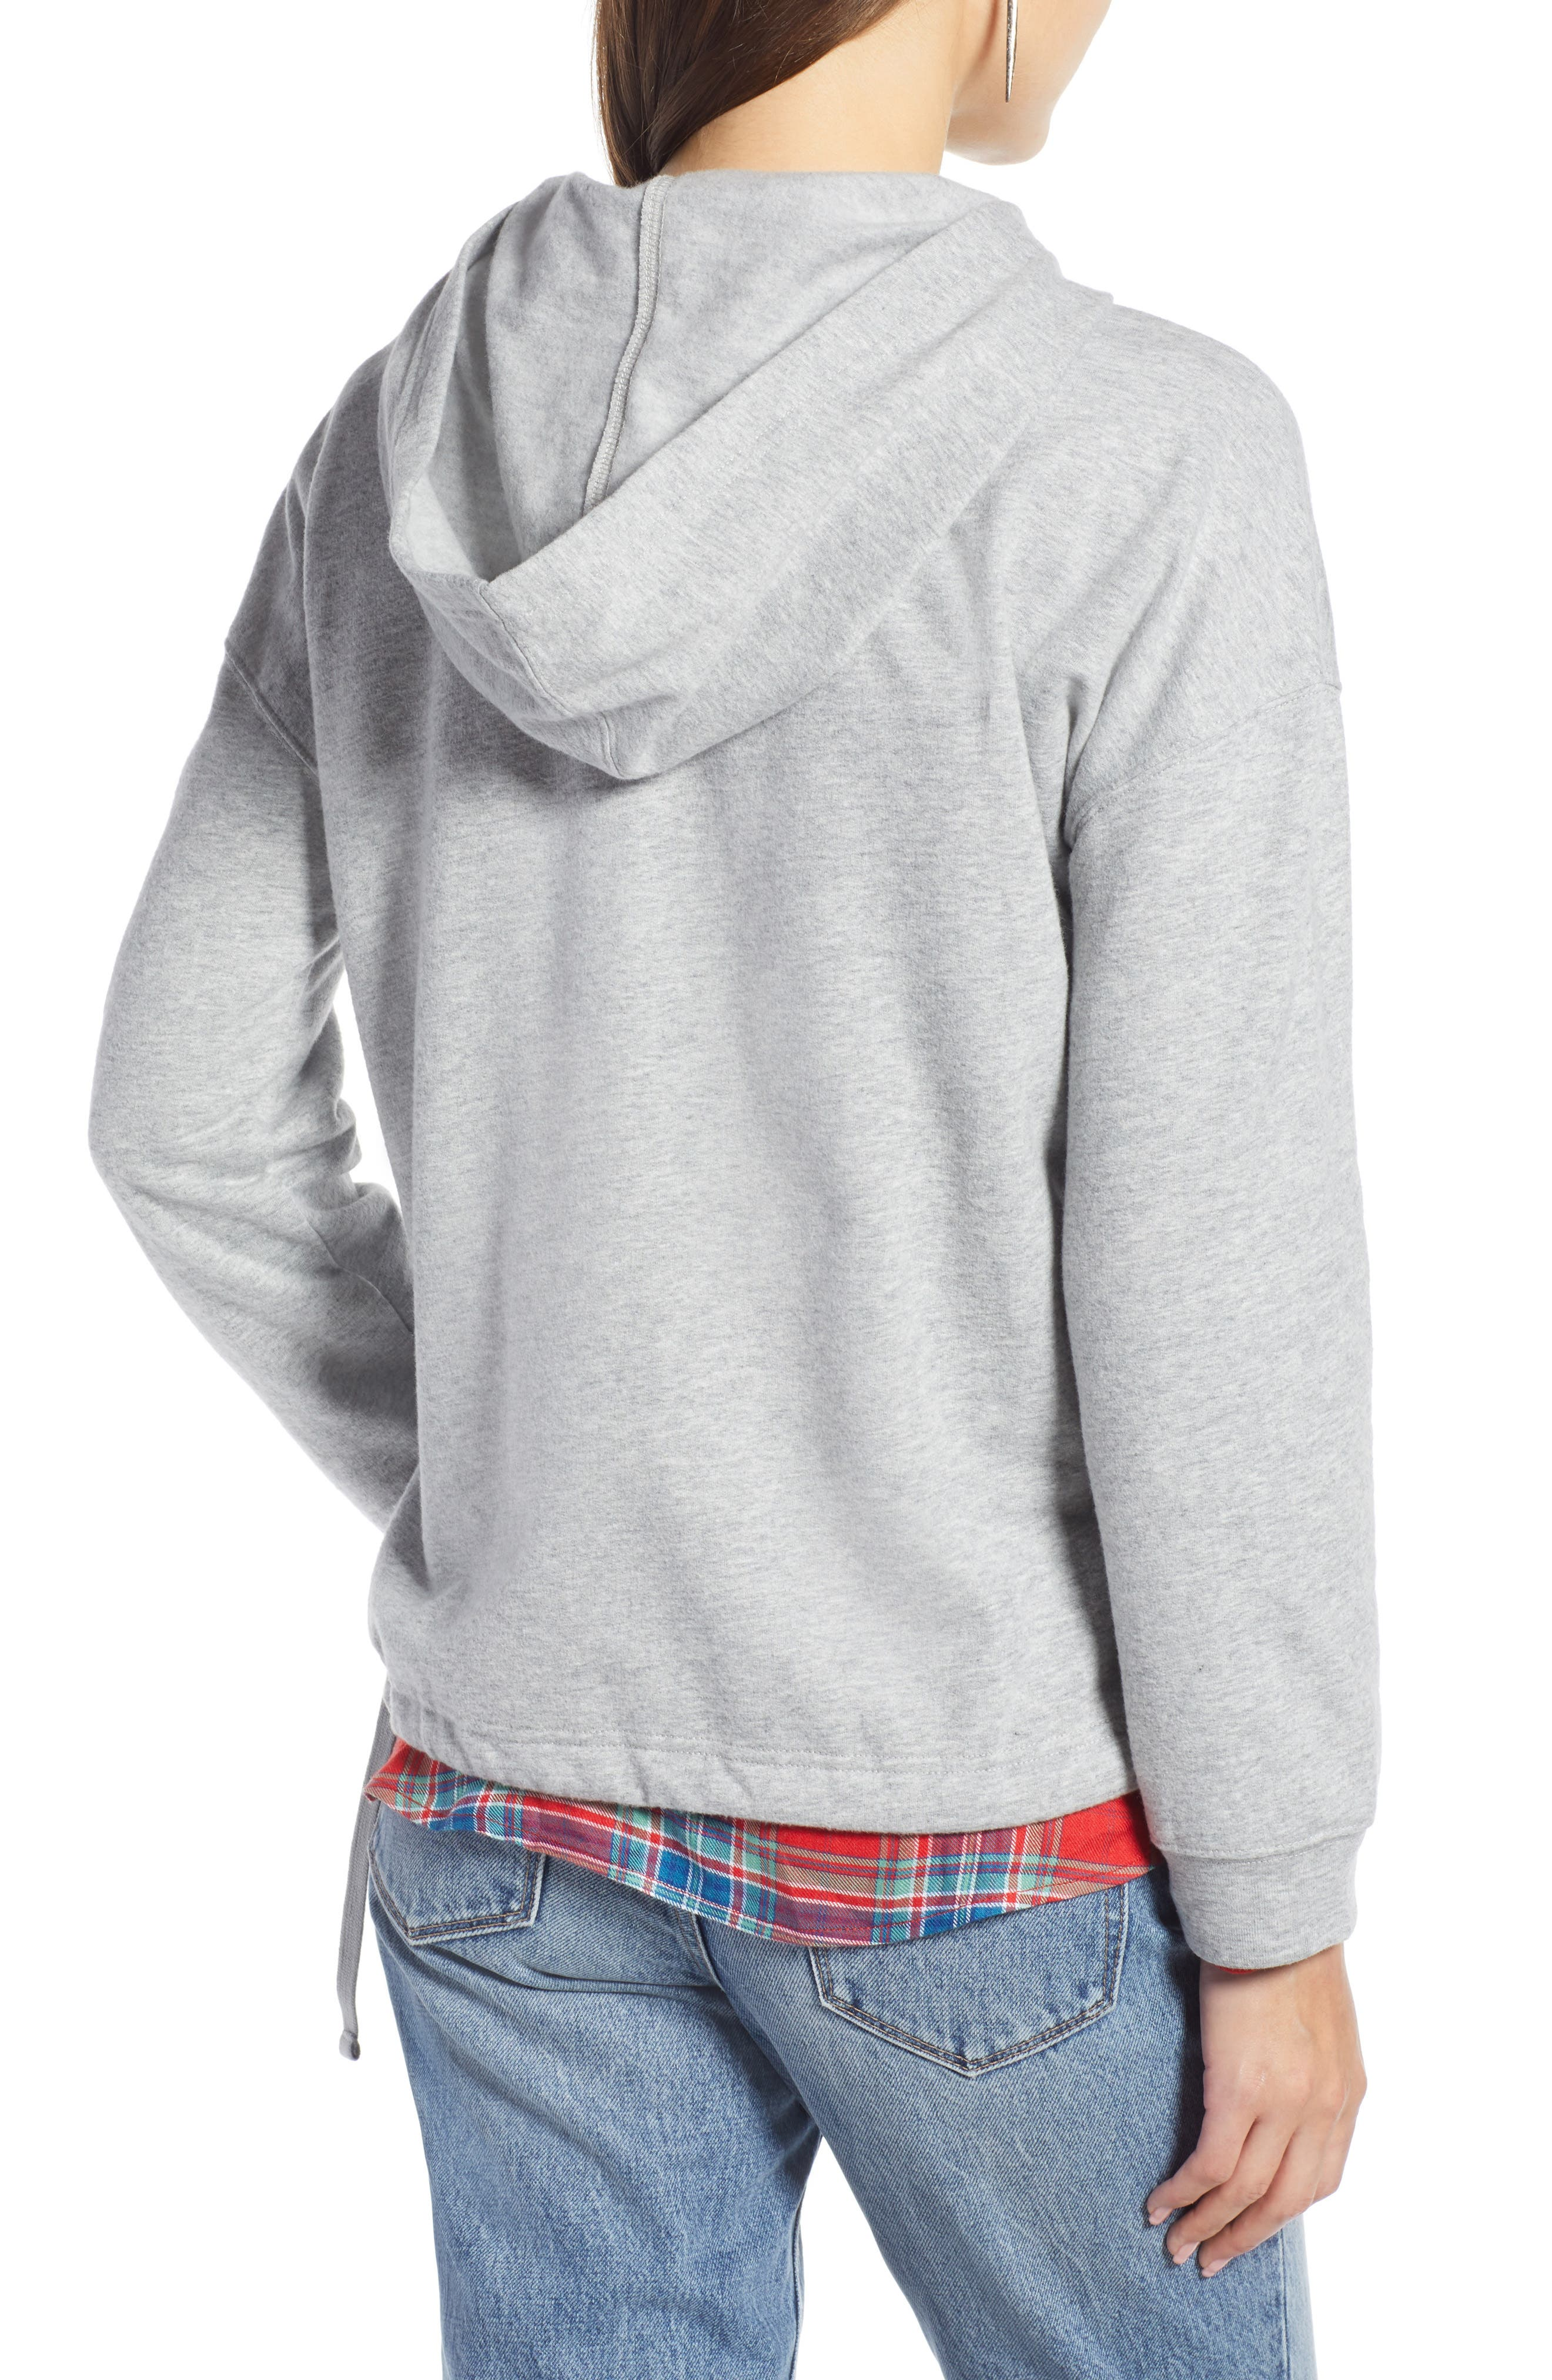 TREASURE & BOND, Drawstring Detail Hoodie, Alternate thumbnail 2, color, 030